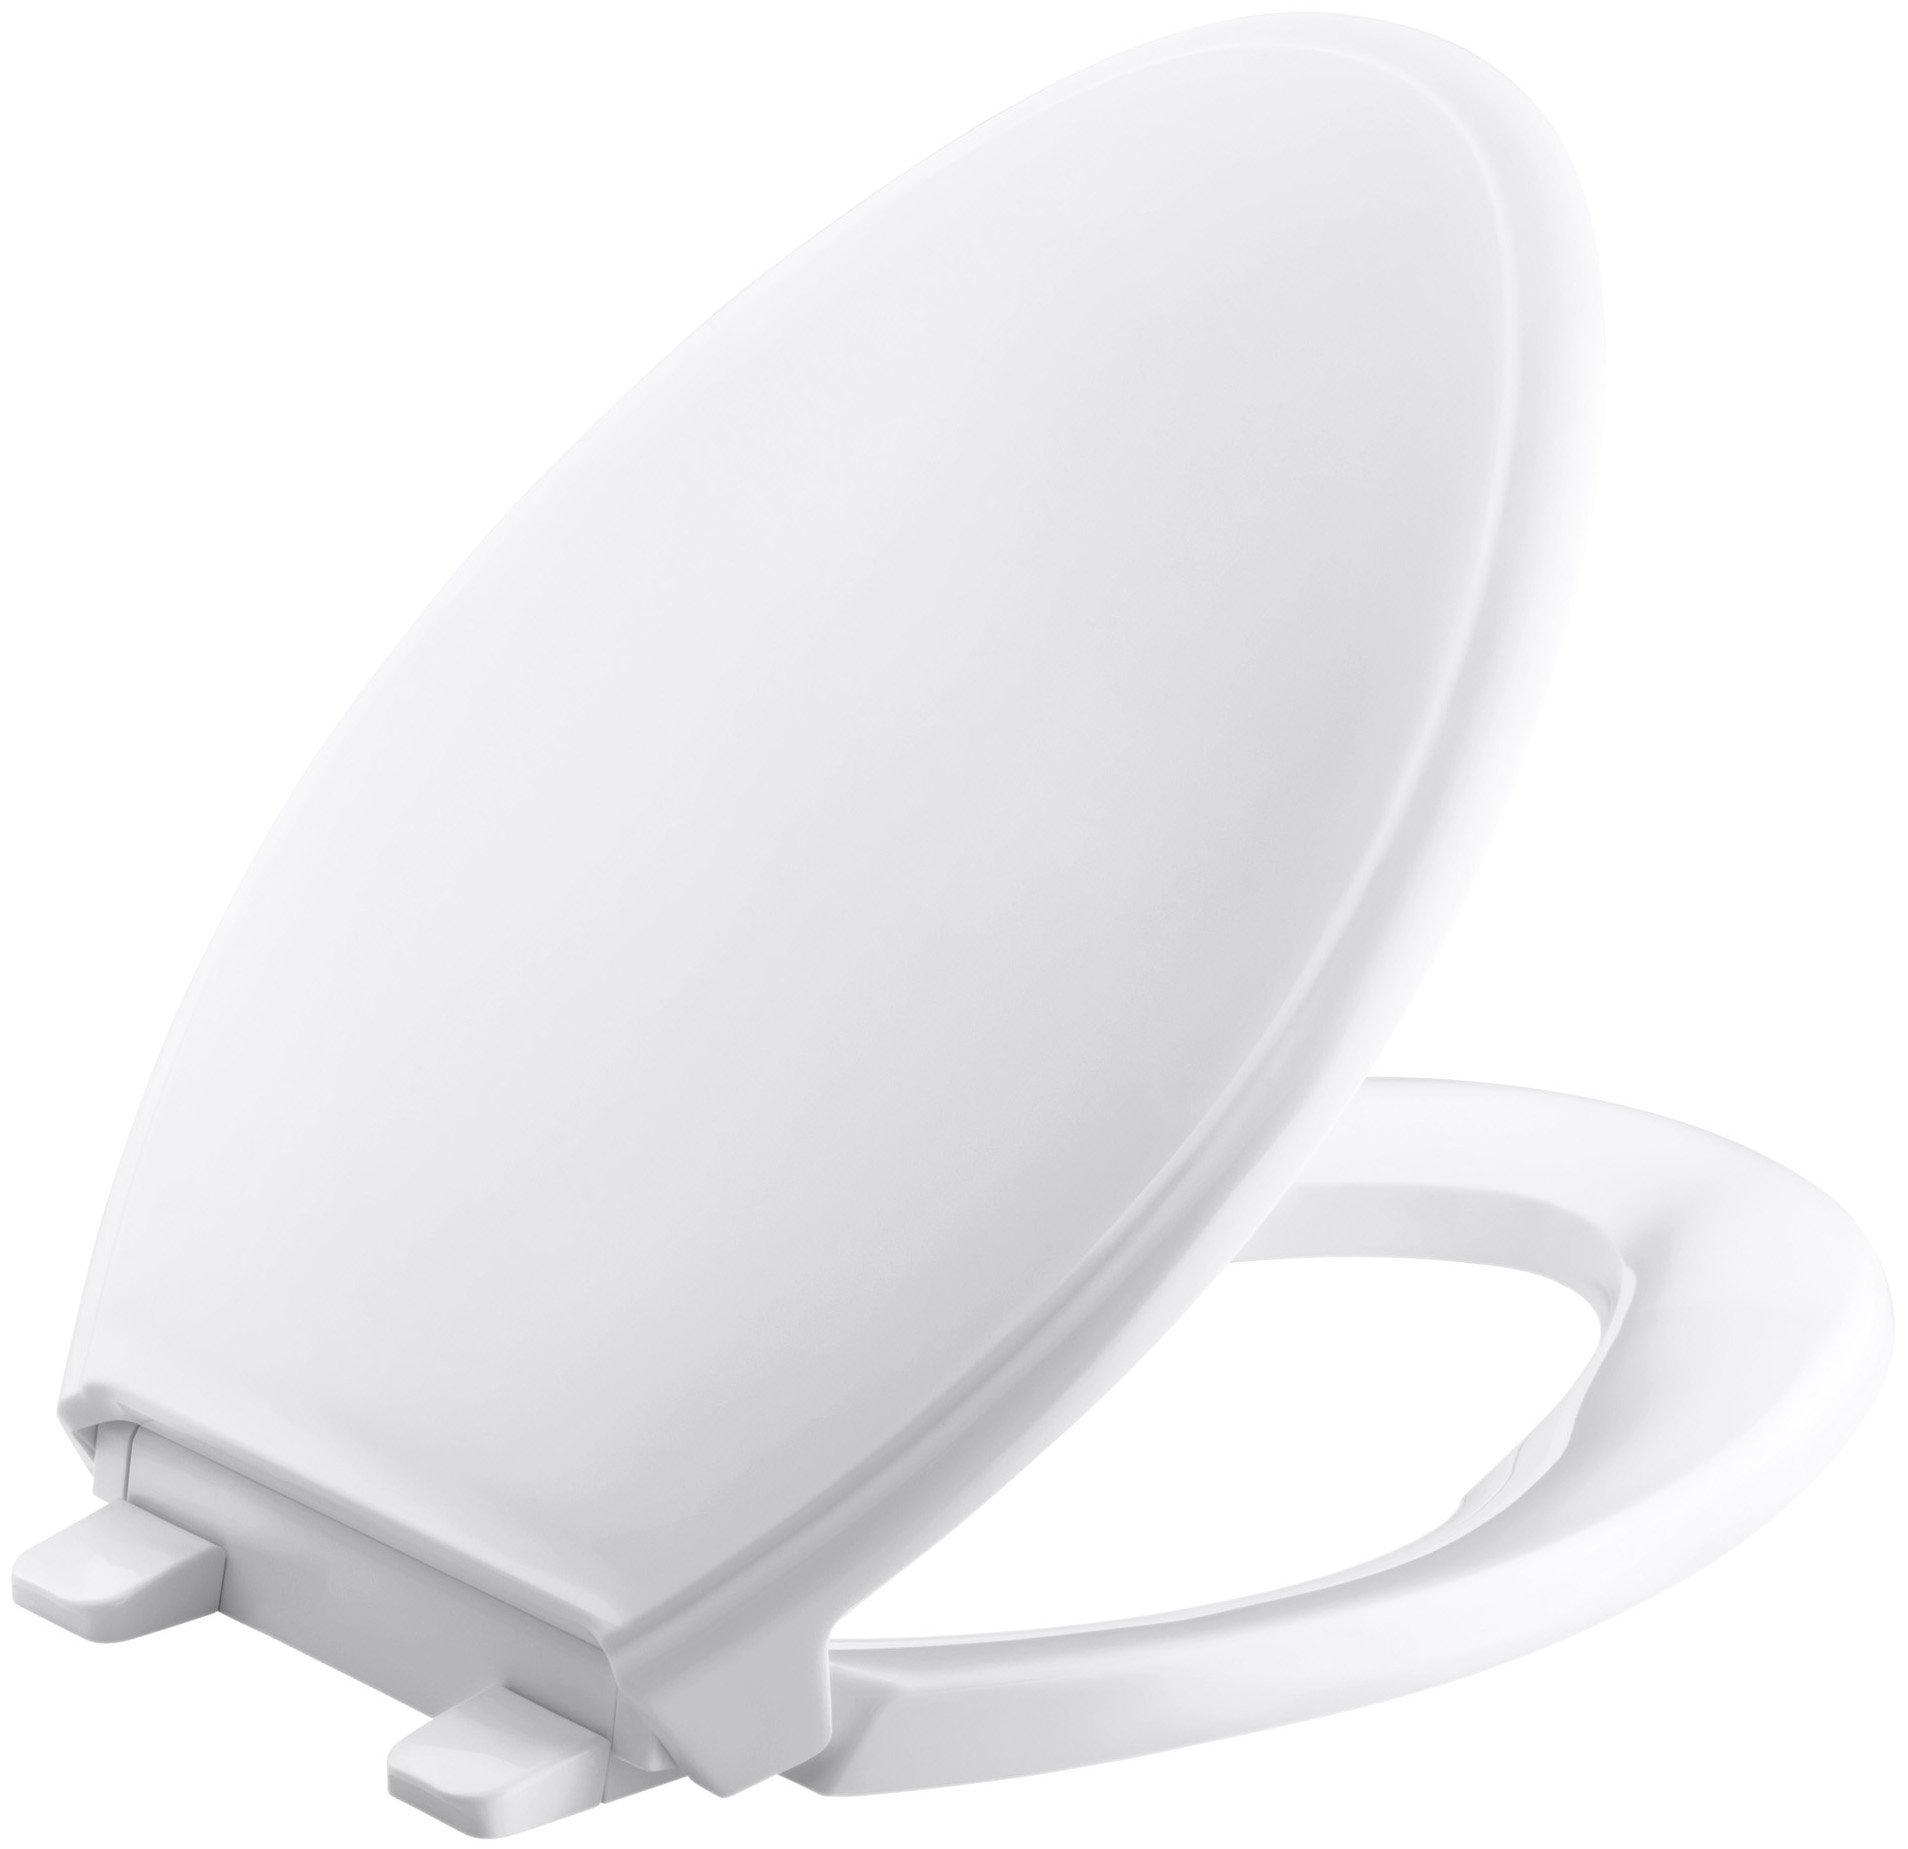 KOHLER K-4733-0 Glenbury Quiet-Close with Grip-Tight Bumpers Elongated Toilet Seat, White by Kohler